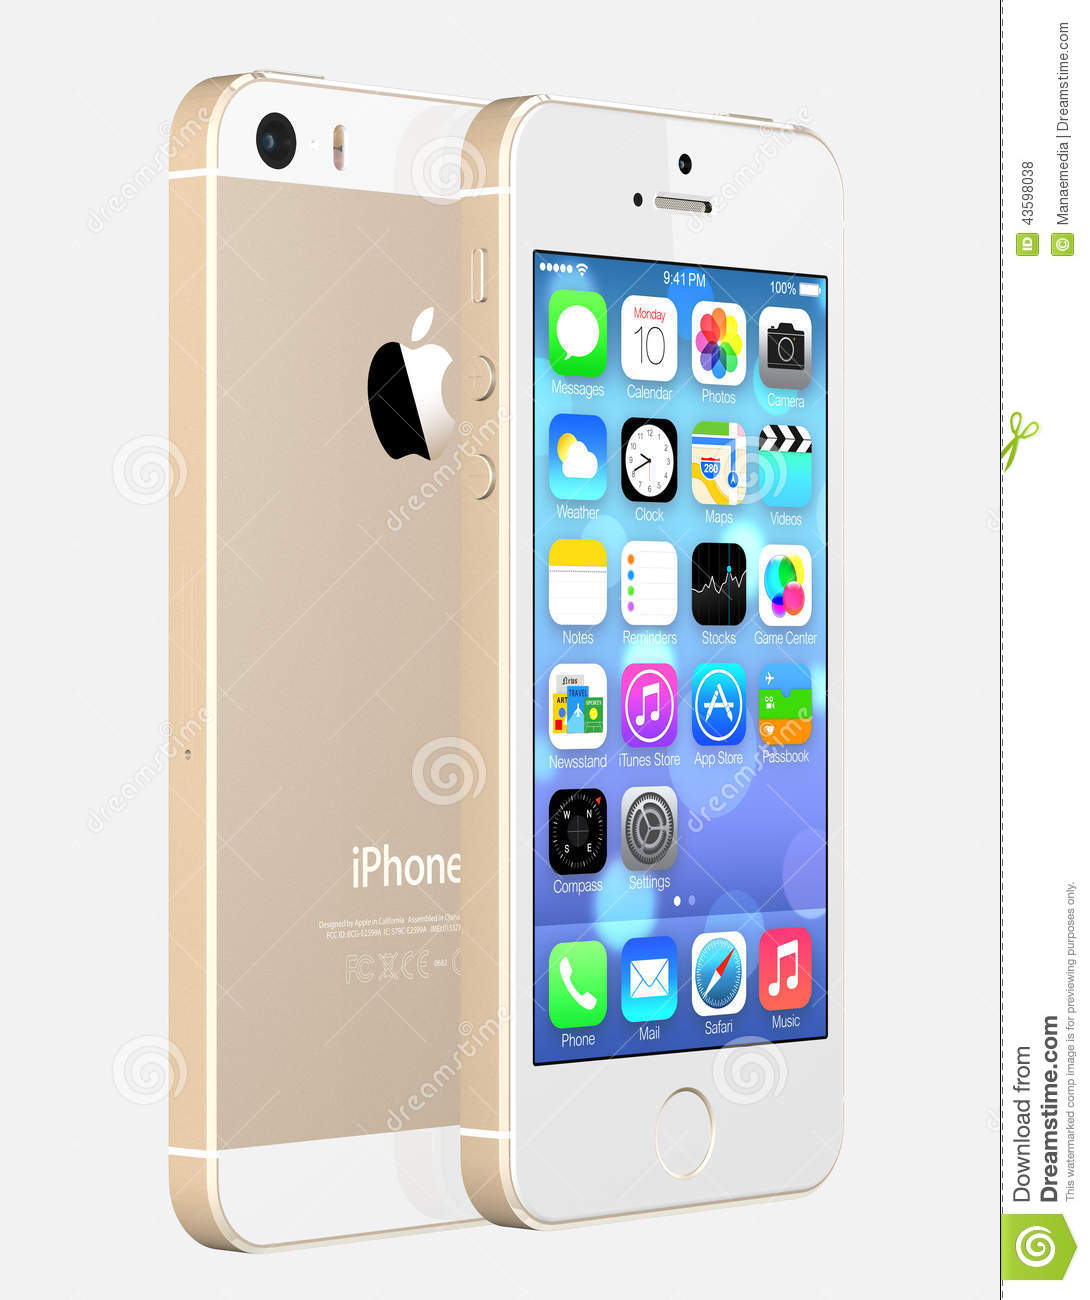 Apple Gold IPhone 5s Showing The Home Screen With IOS7